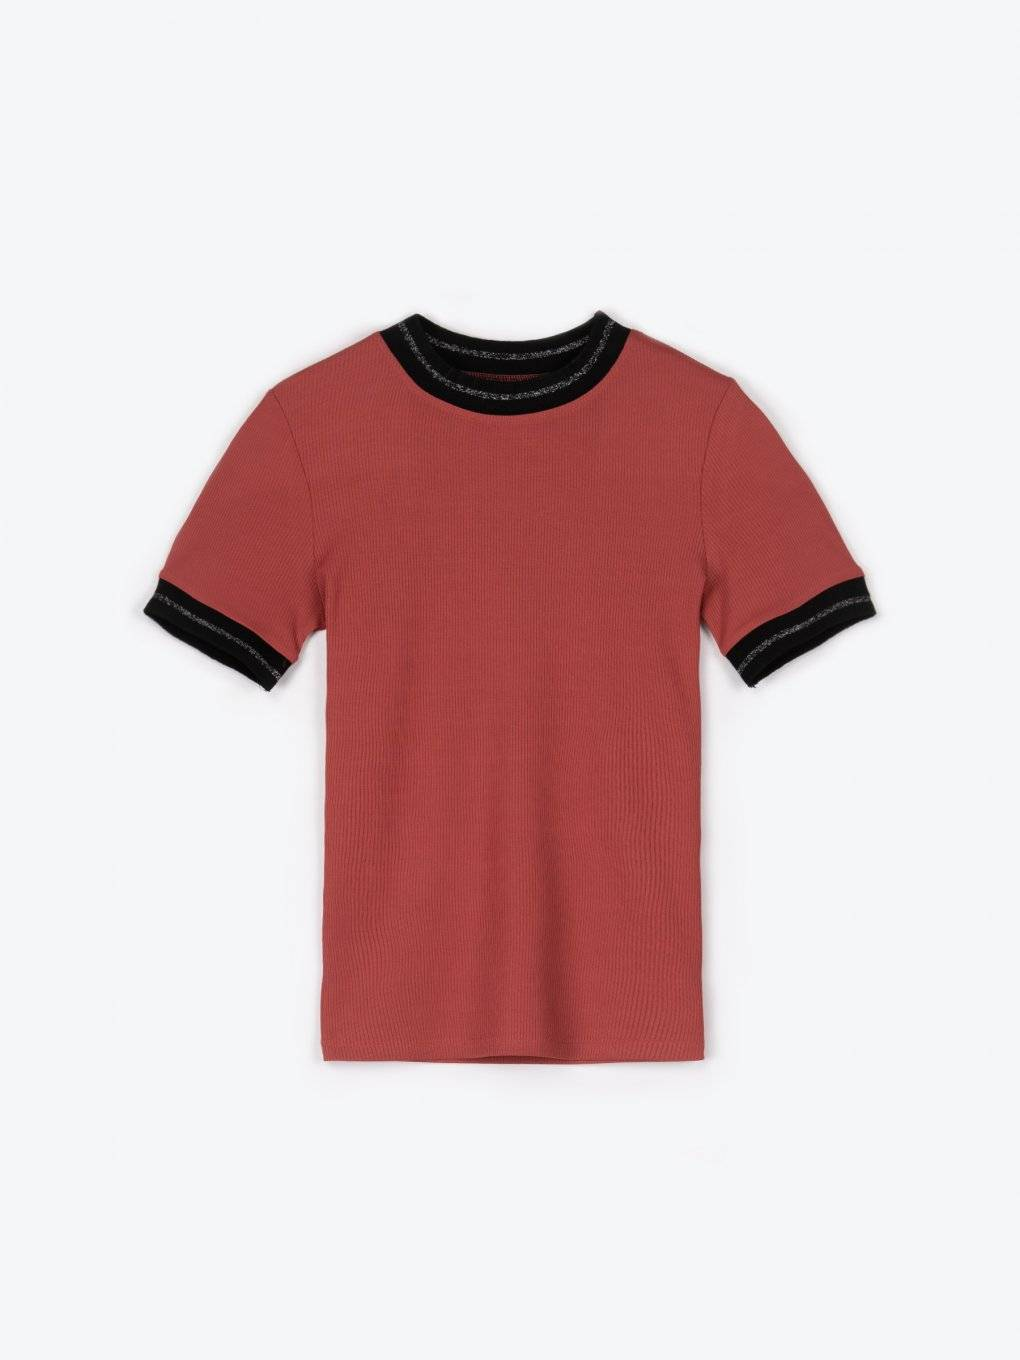 Ribbed t-shirt with embelished neck trim